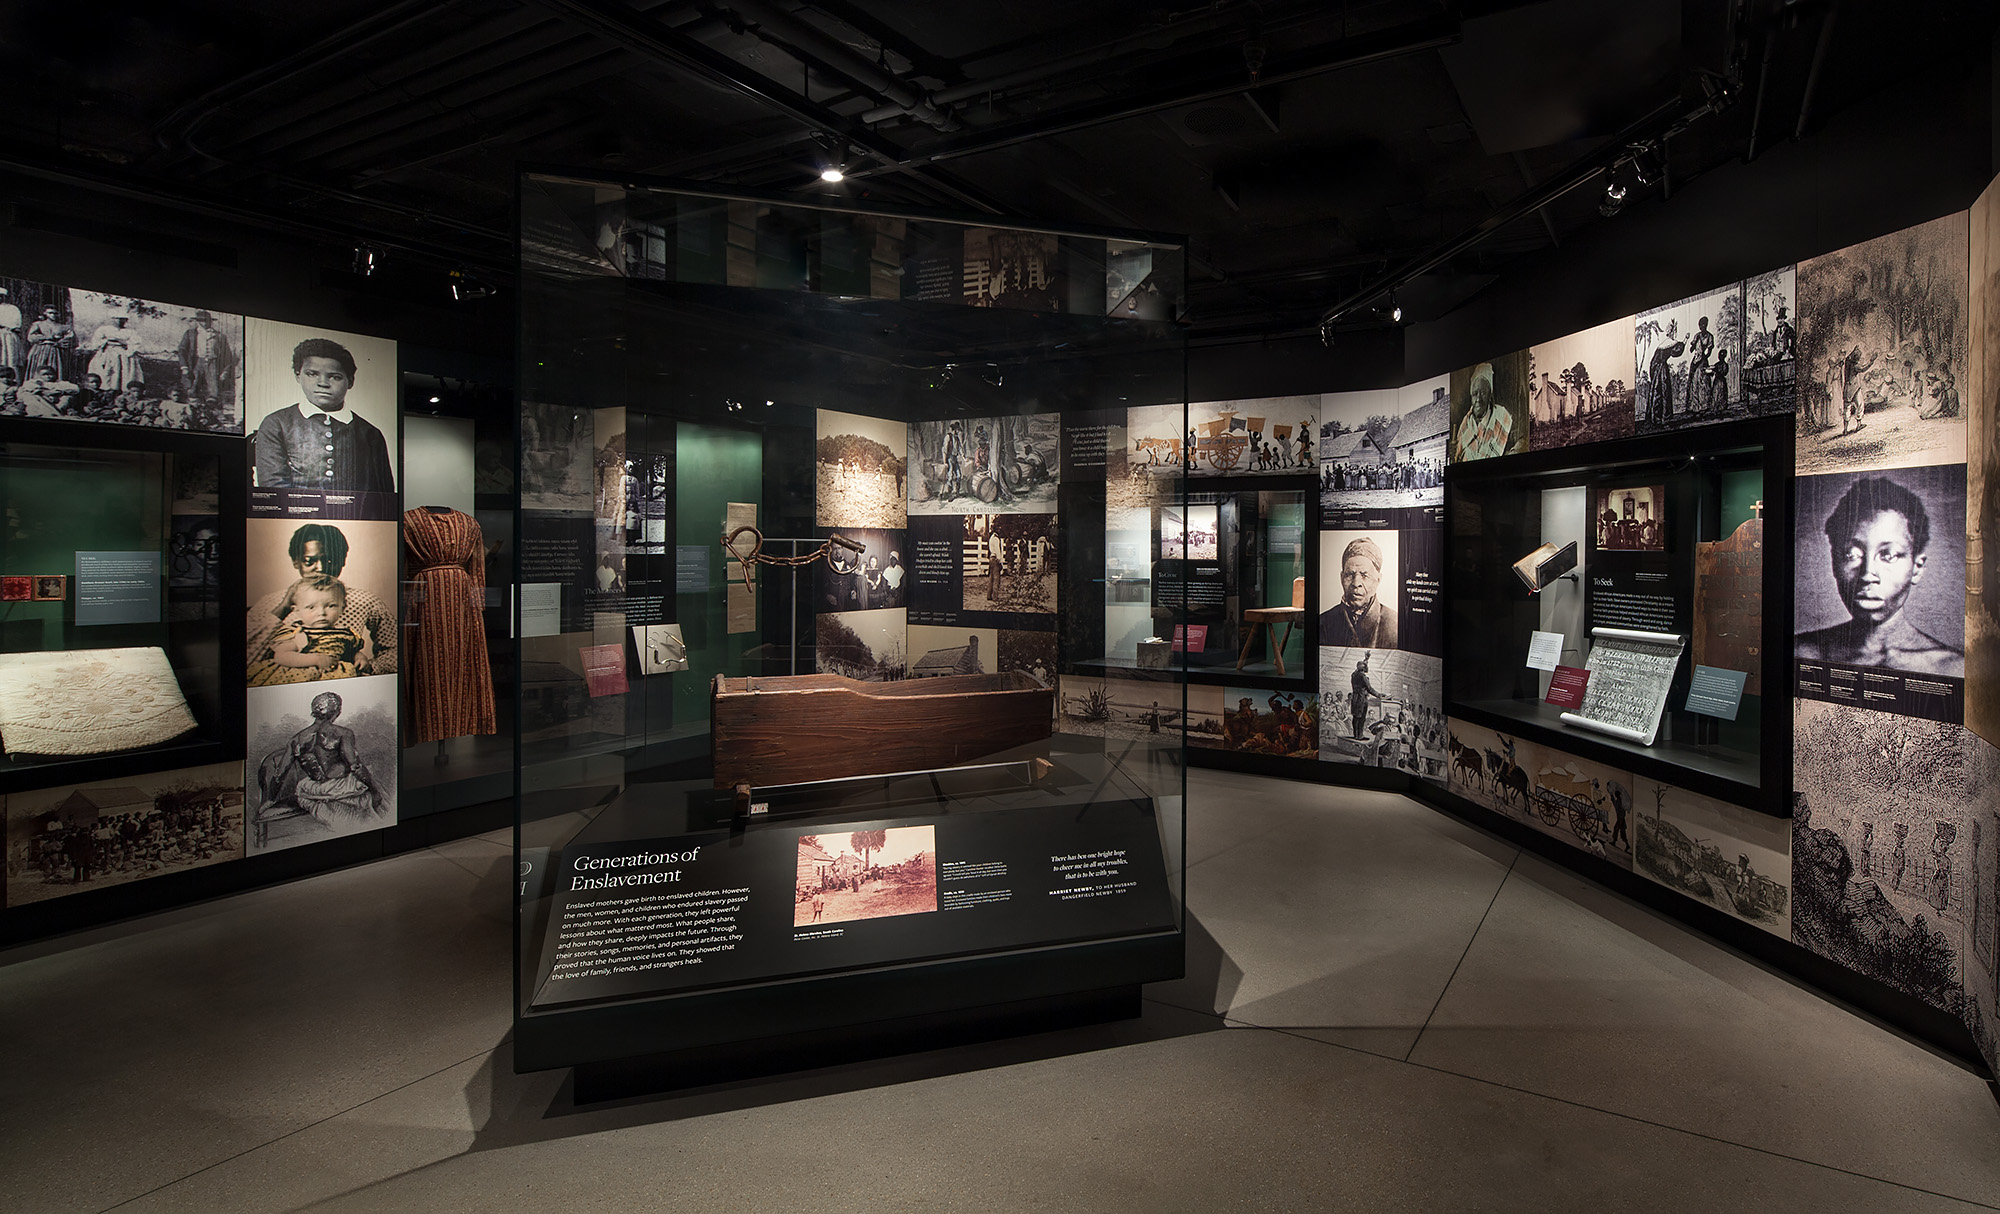 Nmaahc Design And Production Incorporated